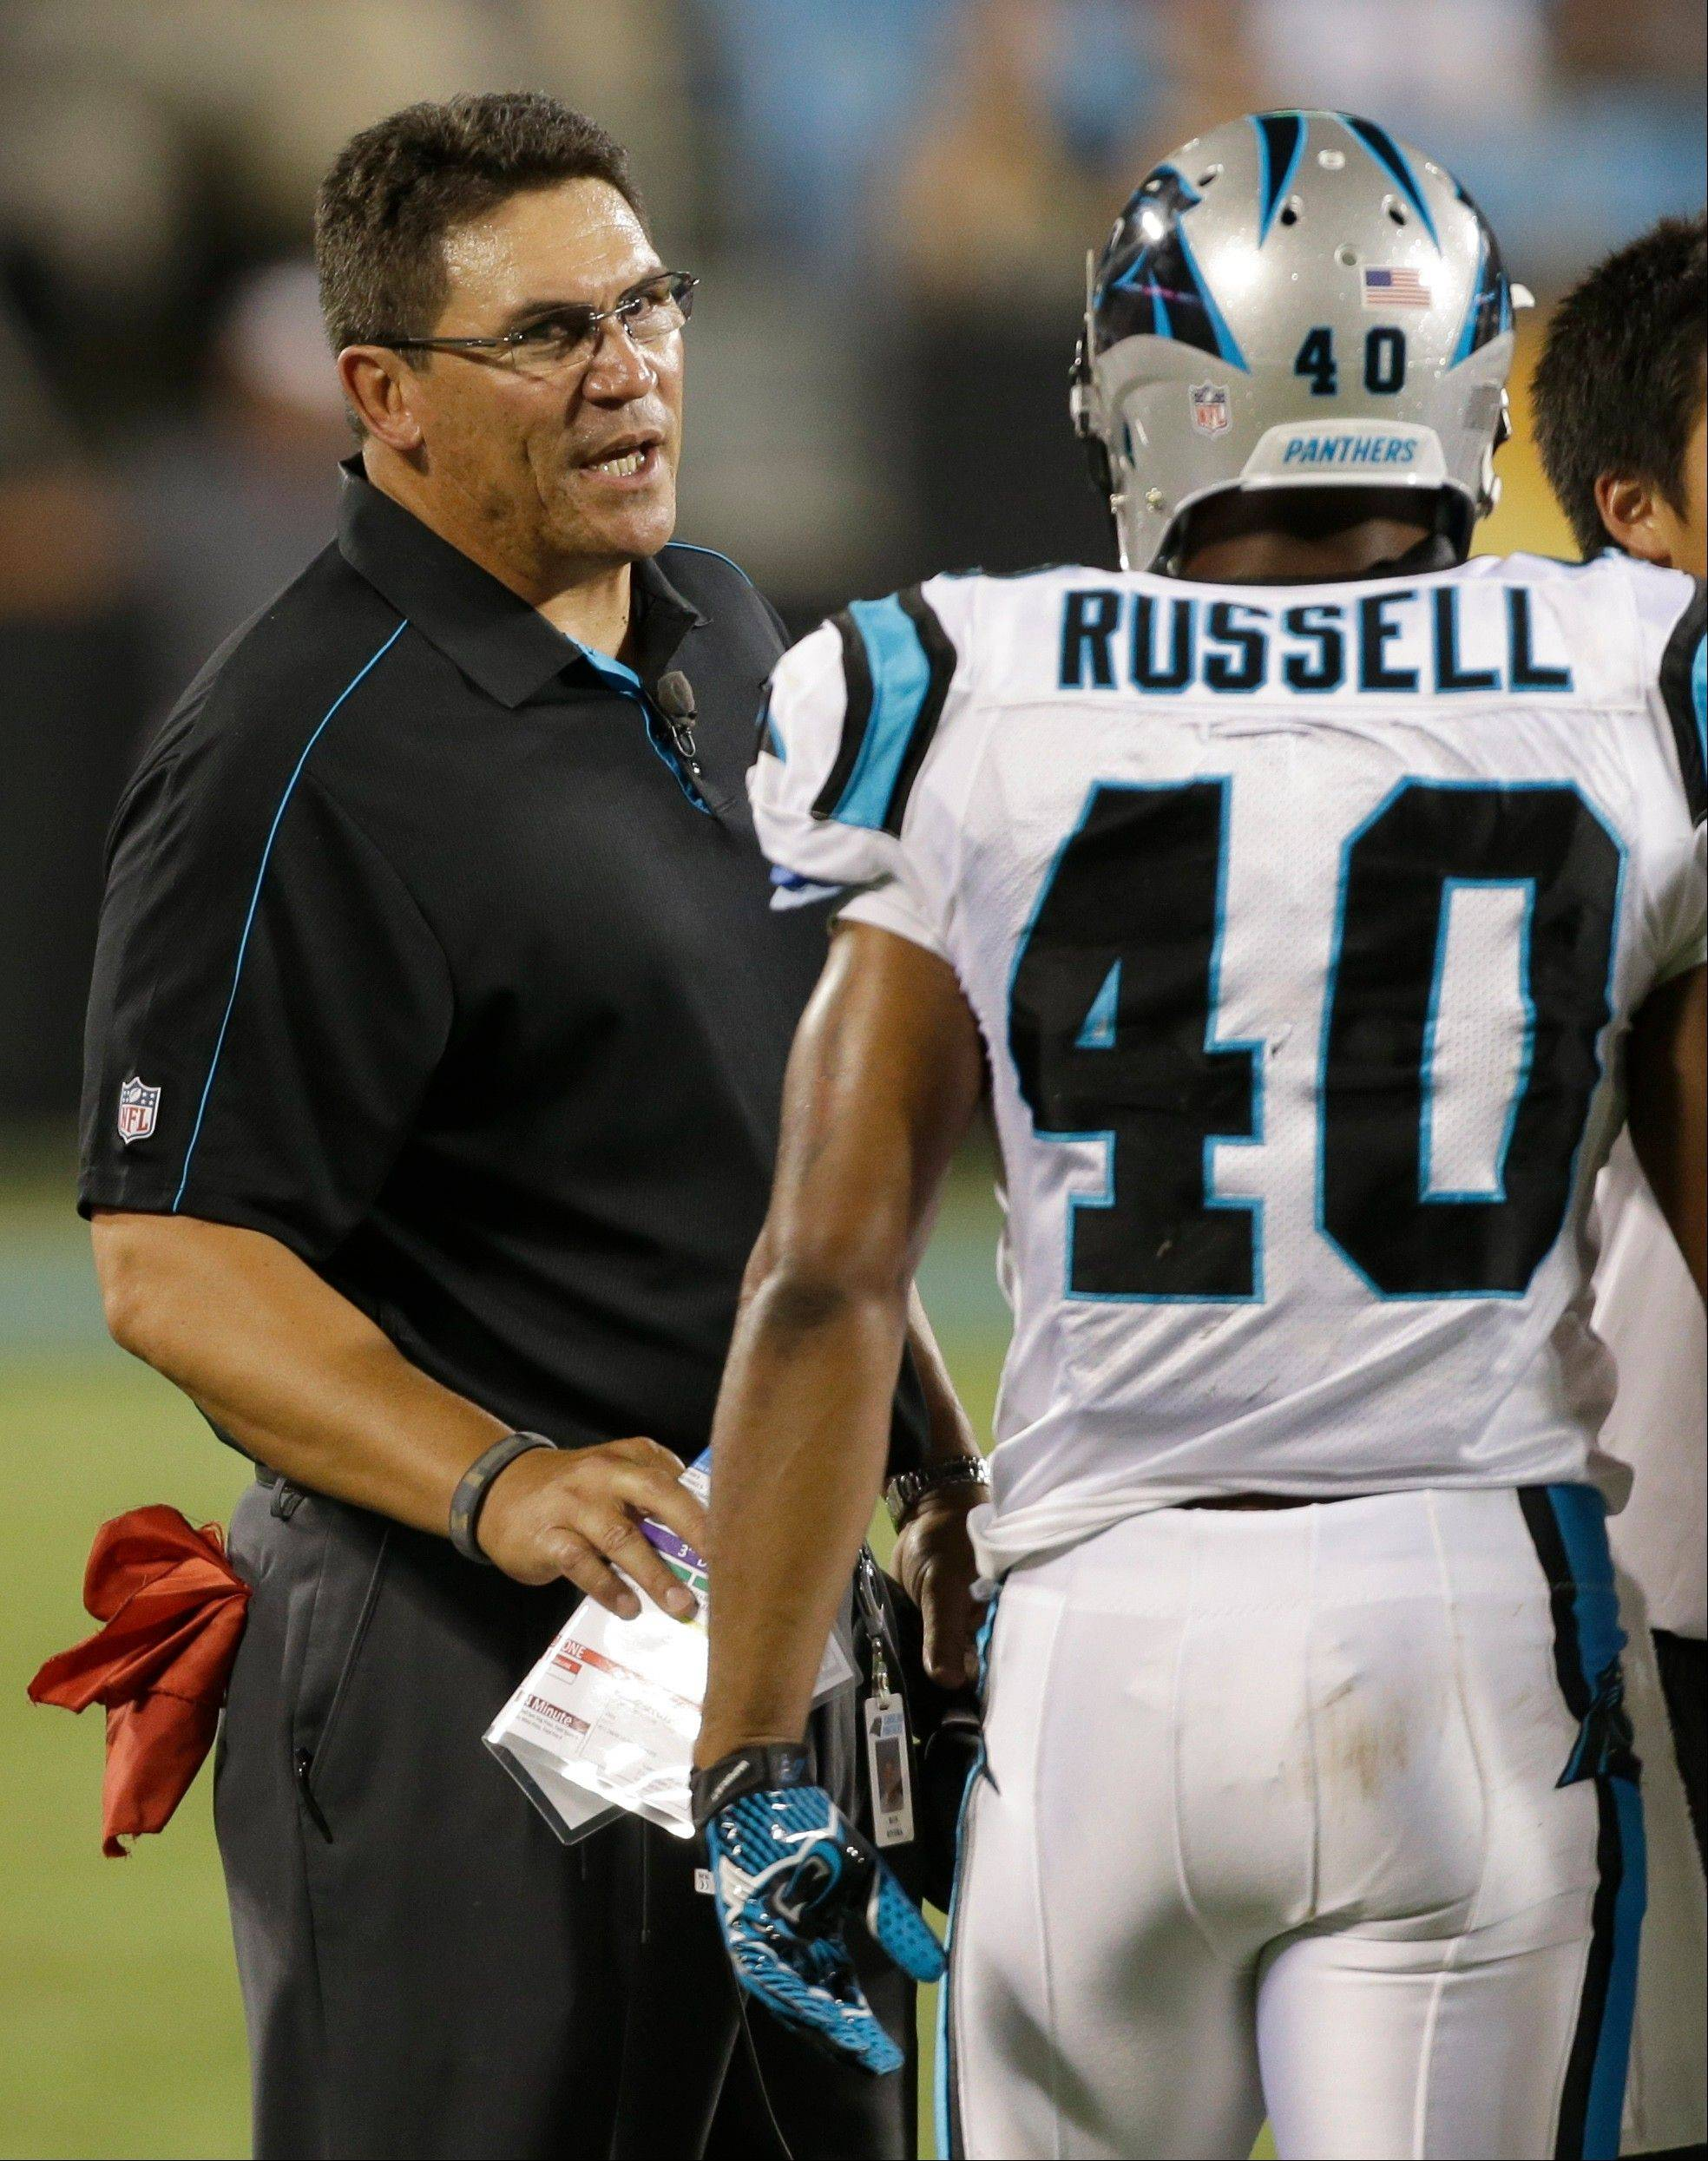 Carolina Panthers coach Ron Rivera, left, talks with Anderson Russell during the second half of a preseason NFL football game against the Chicago Bears in Charlotte, N.C., Friday, Aug. 9, 2013.